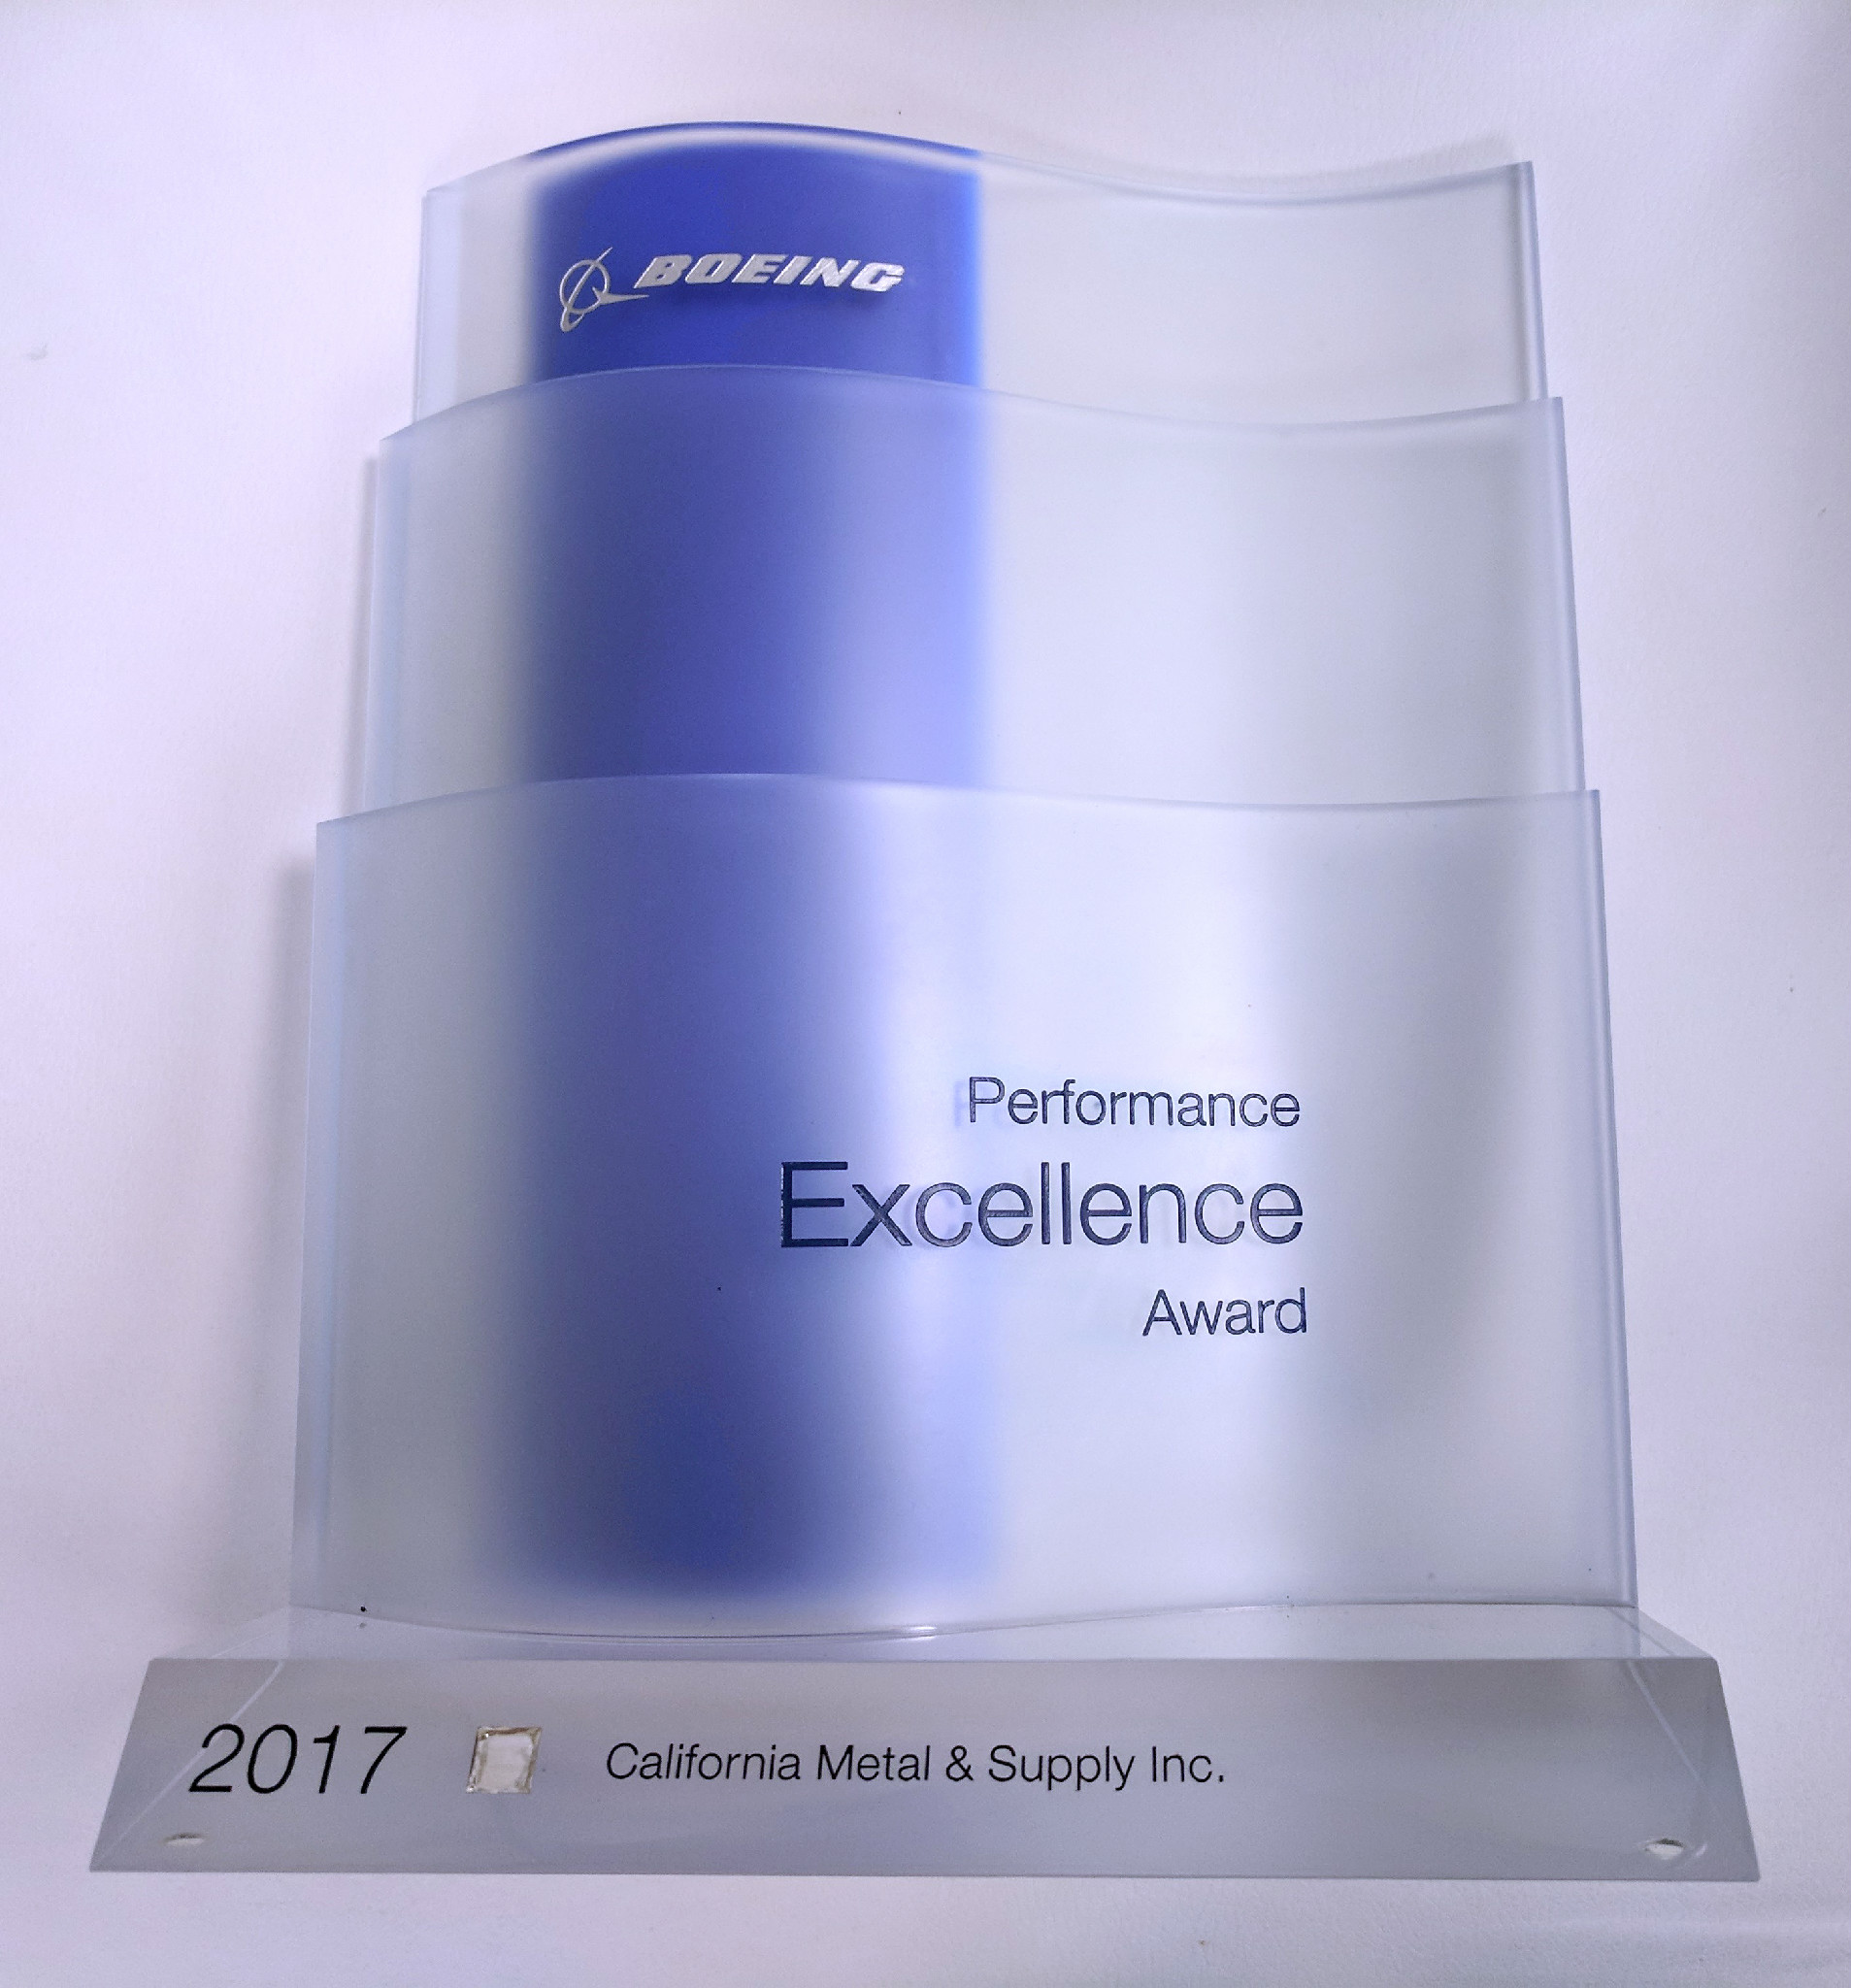 2017 Boeing Performance Excellence Award